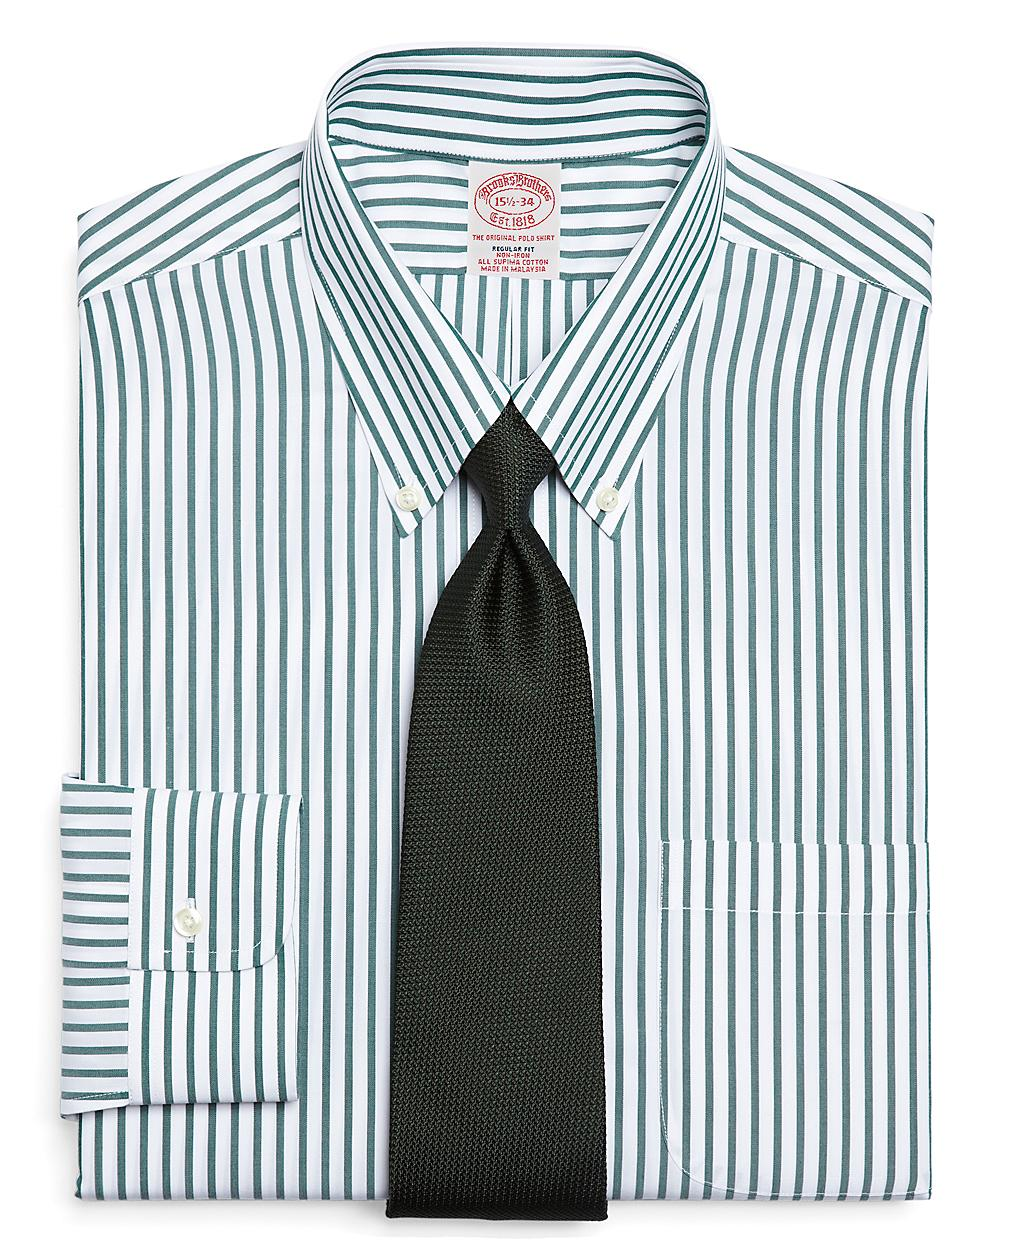 Brooks brothers supima cotton noniron regular fit bold for Brooks brothers dress shirt fit guide